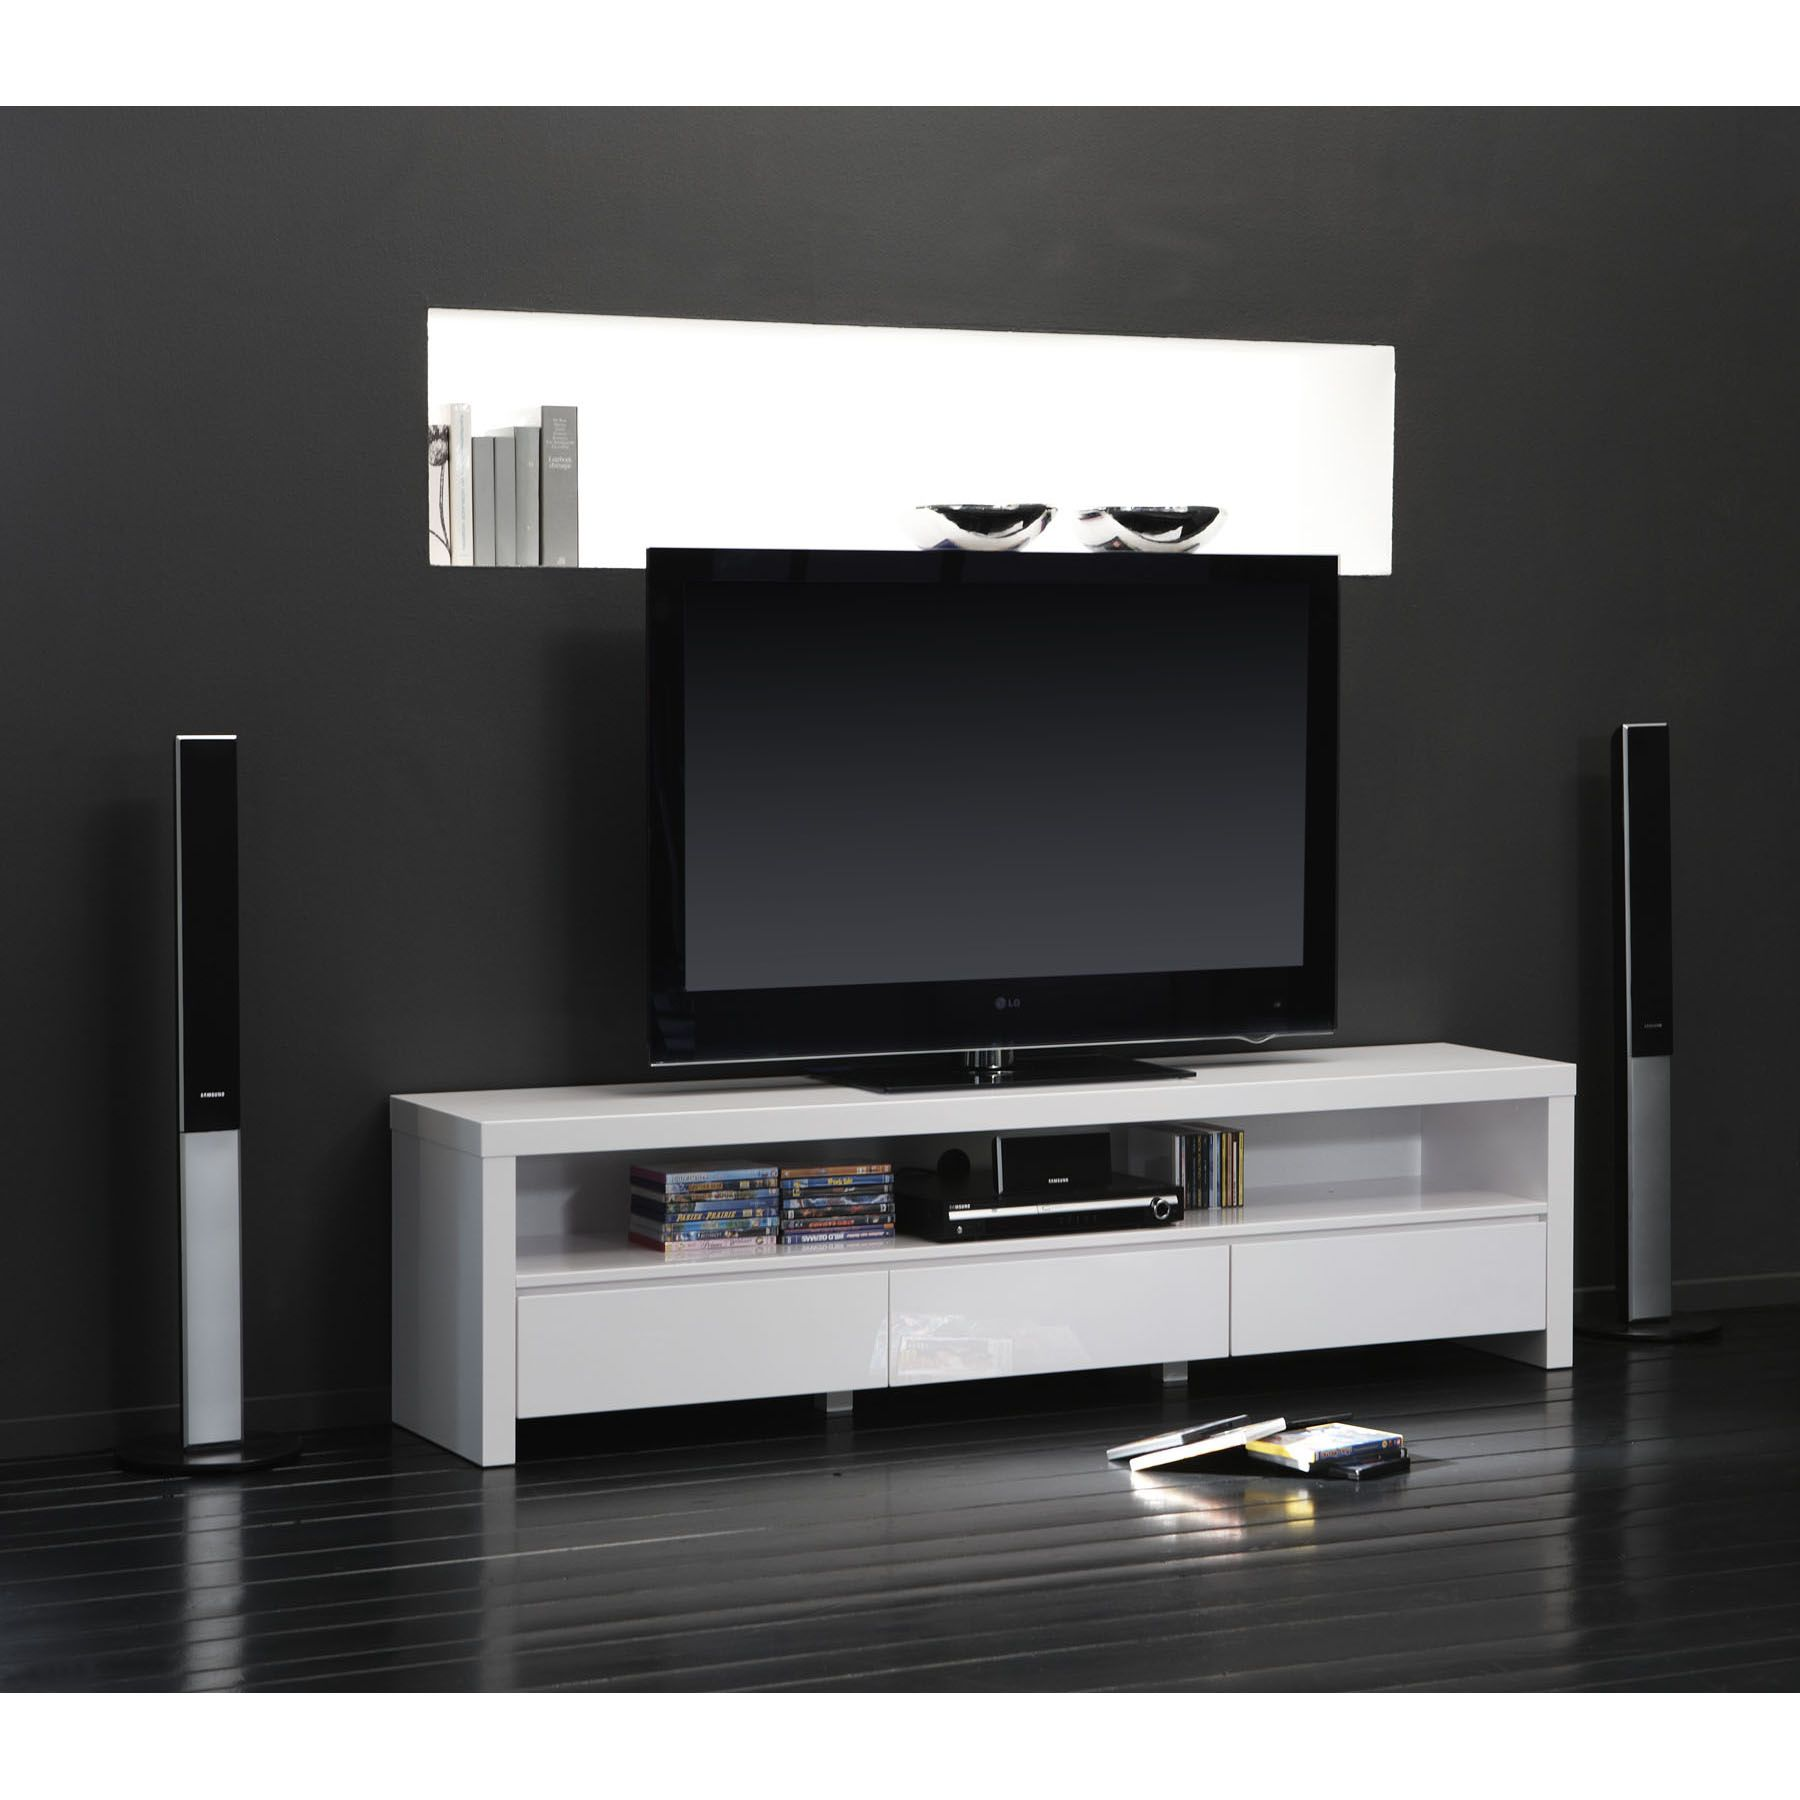 Meuble Tv Home Cin Ma Mon Salon Livebox Play Pinterest  # Meuble Tv Homecinema